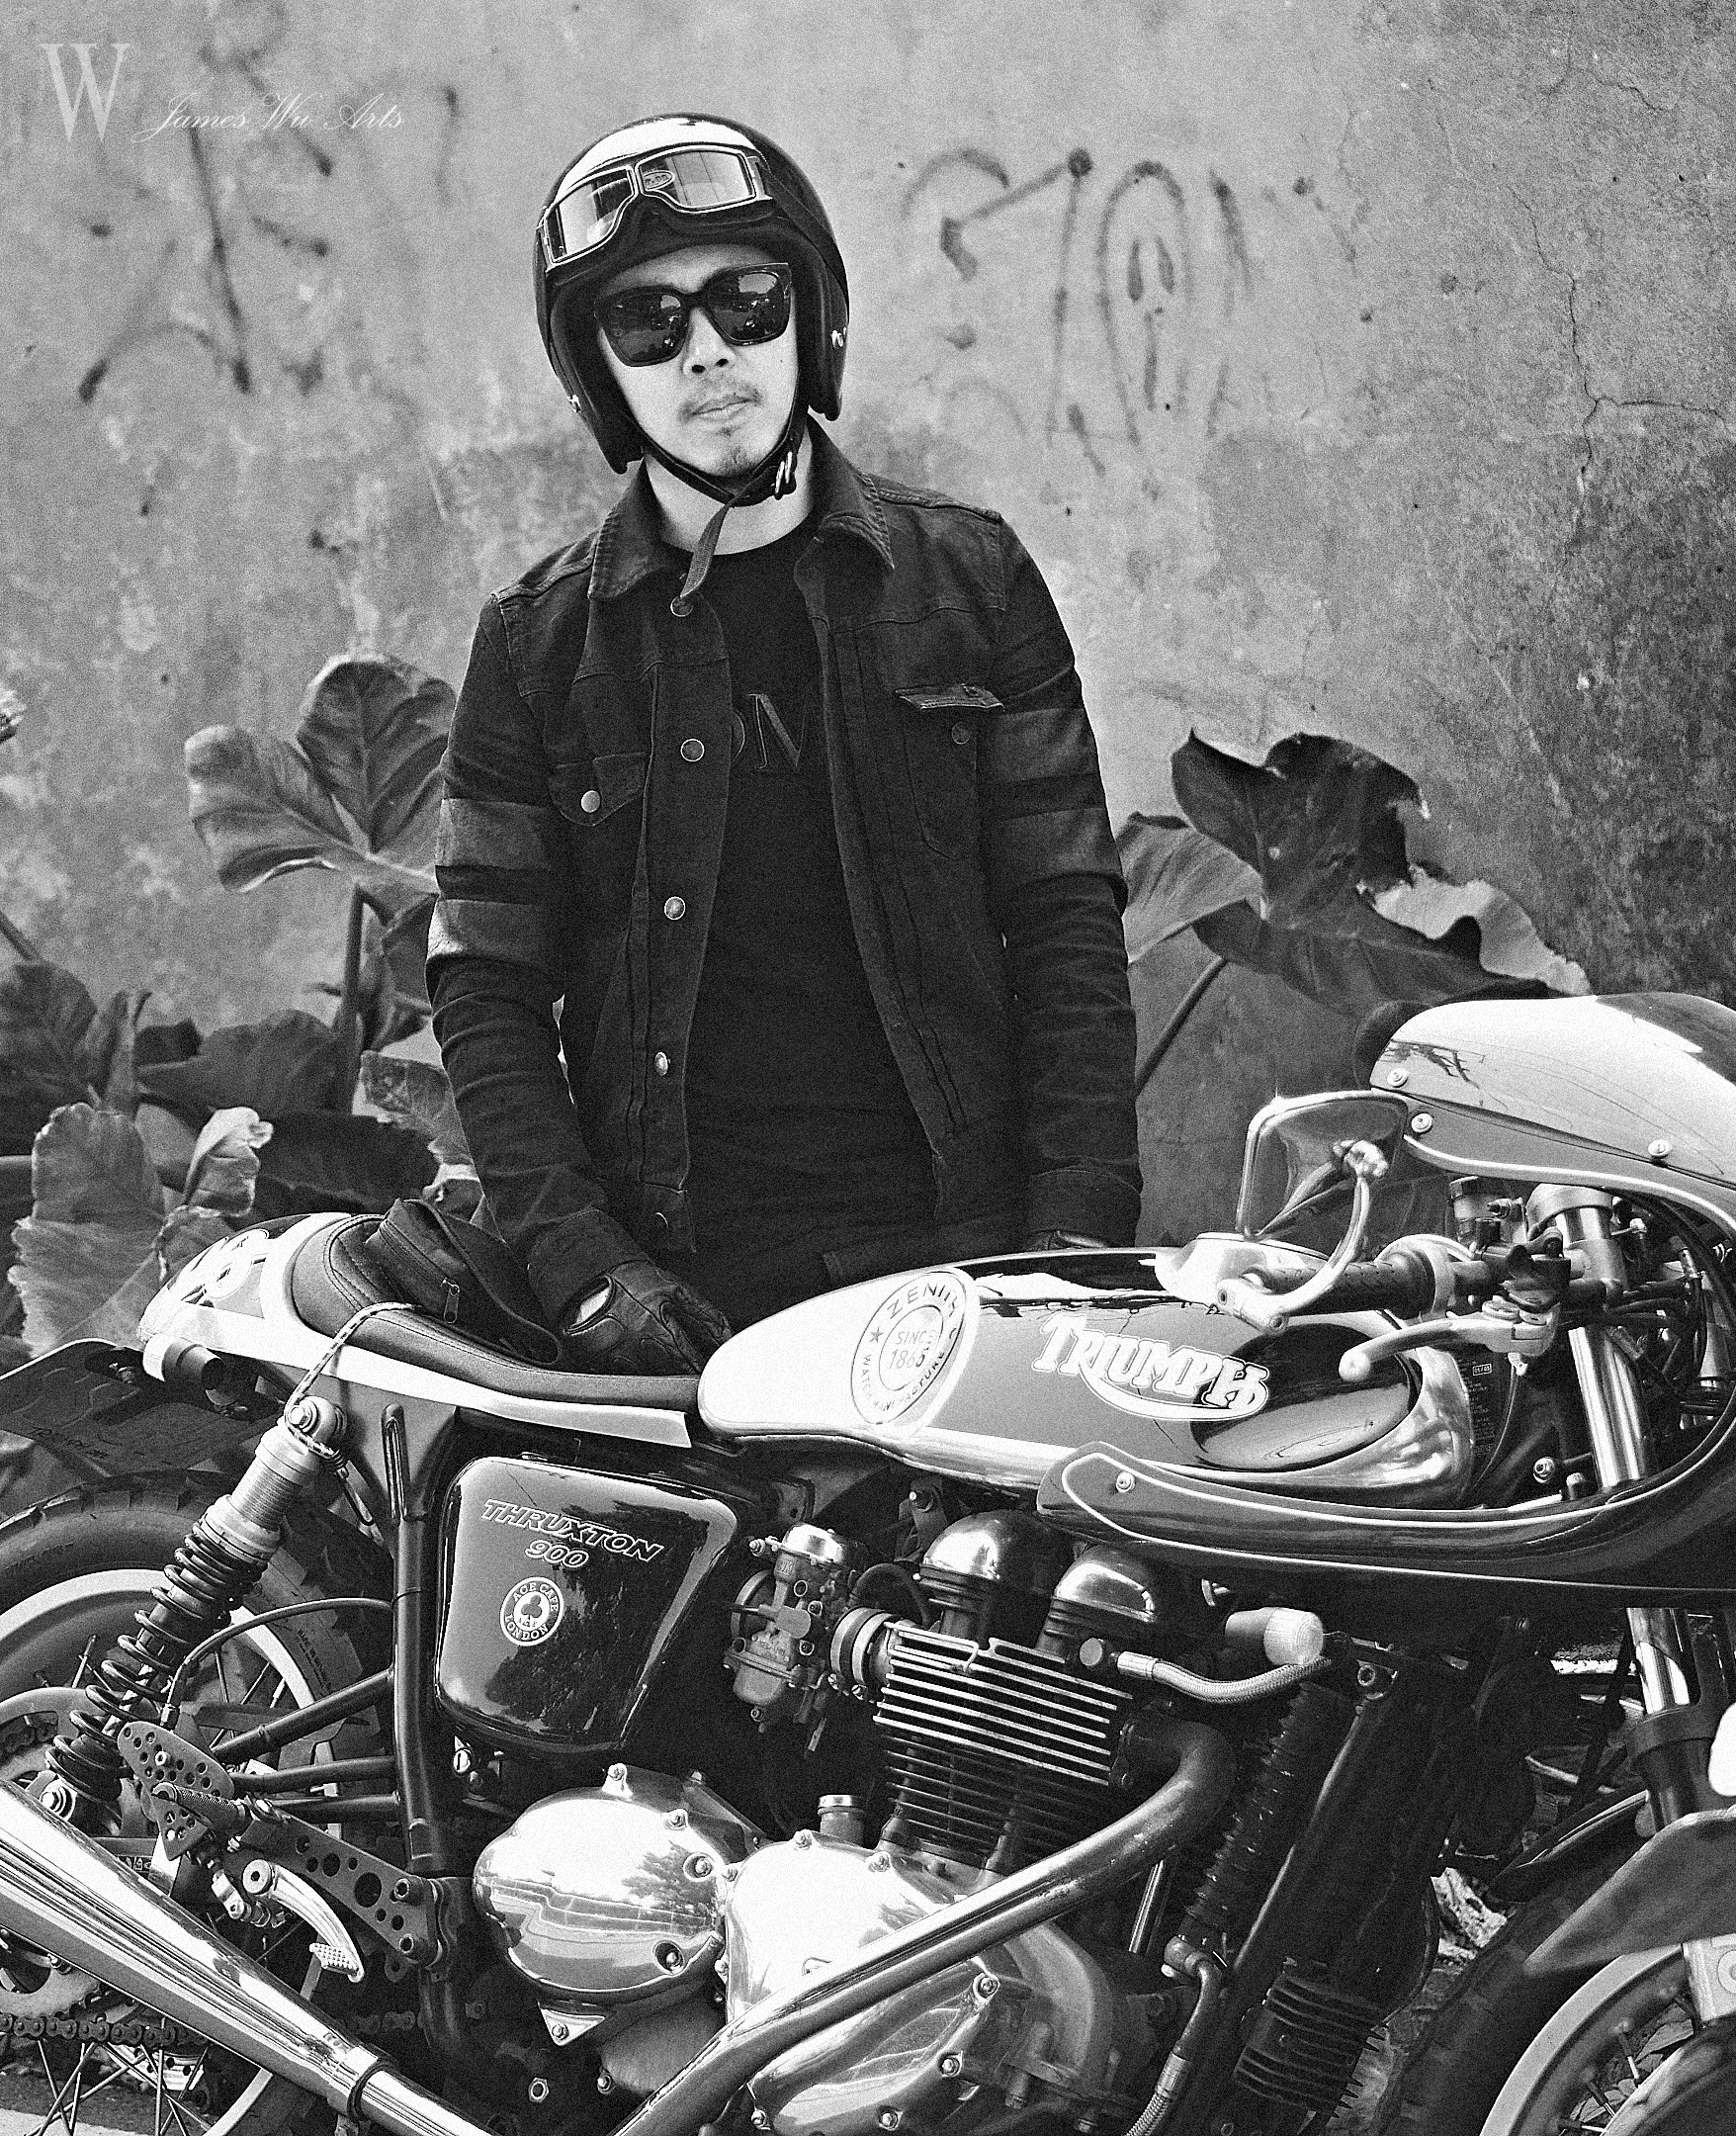 TONUP ROCKERS CAFE RACER (56)